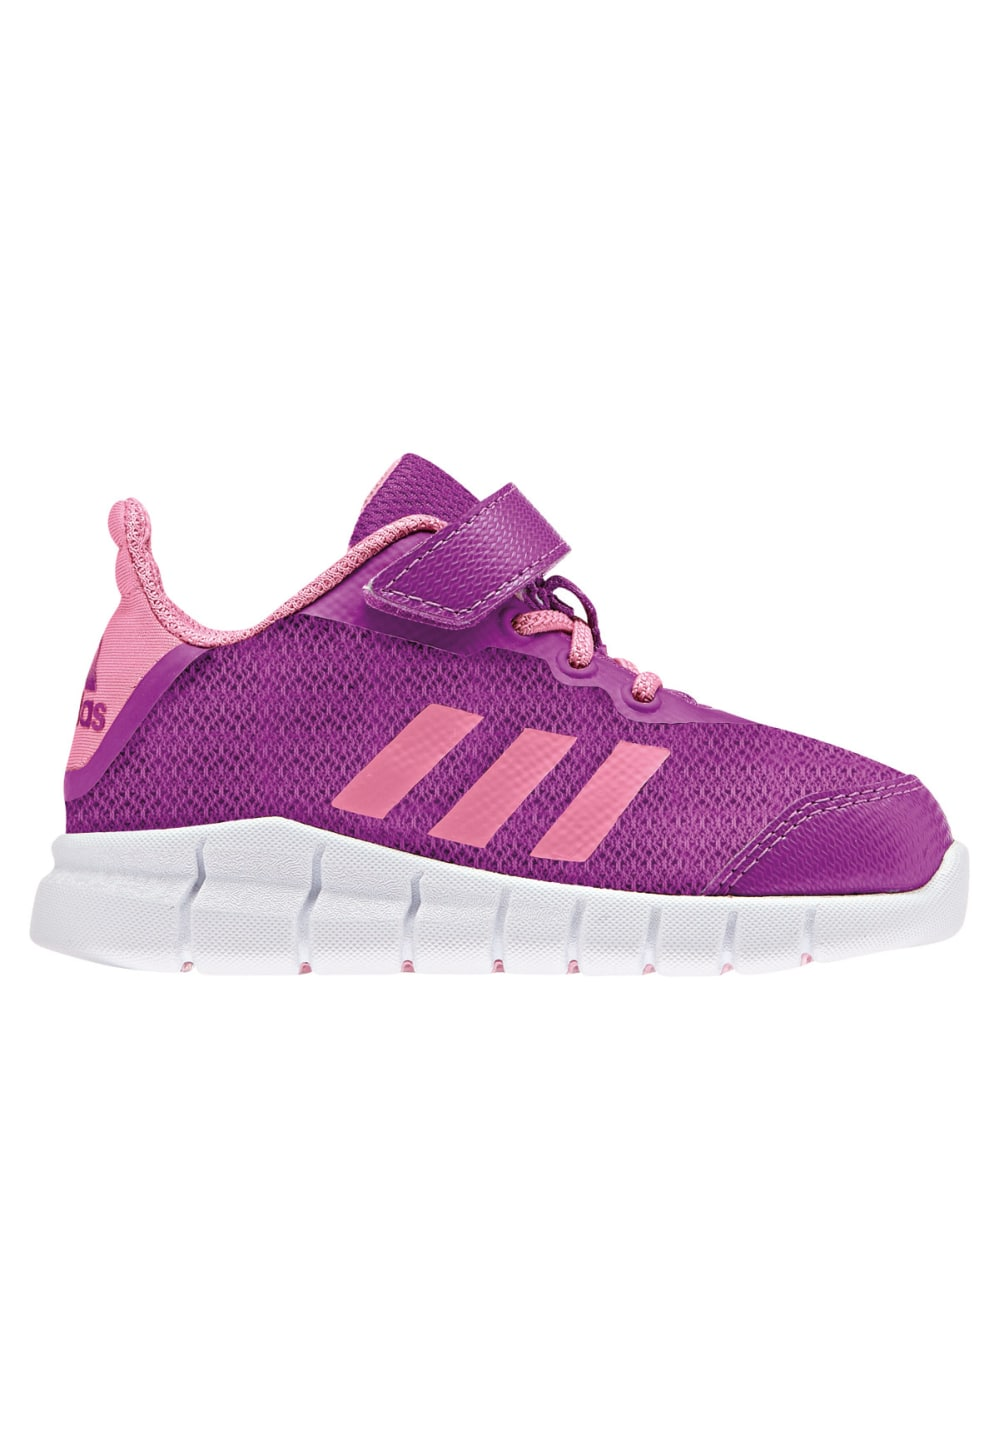 I Adidas Rose Chaussures Rapidaflex El Running nP80kNwOX